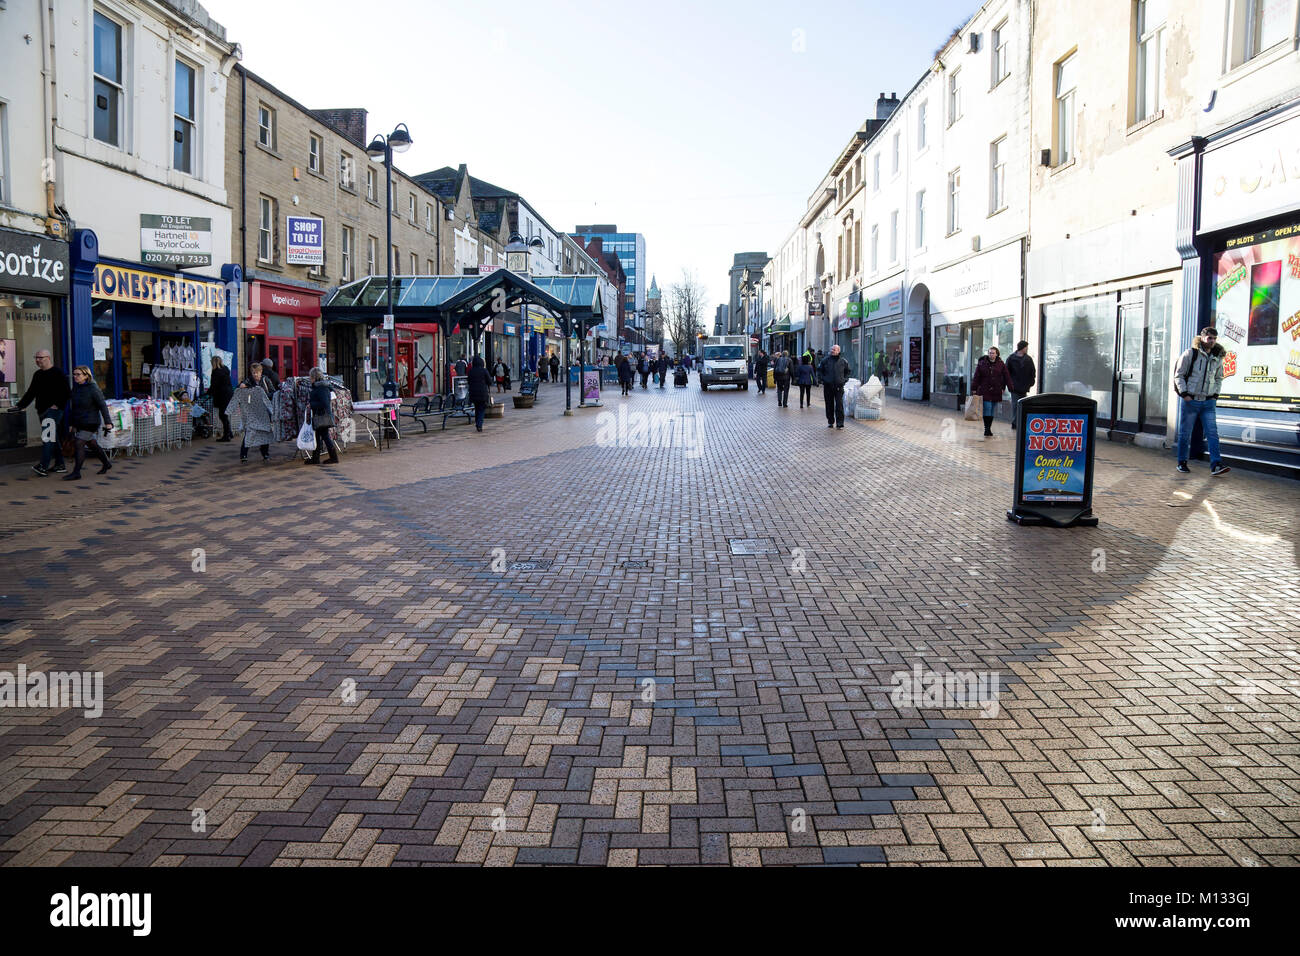 Shoppers in New Street, Huddersfield Town centre, Kirklees - Stock Image